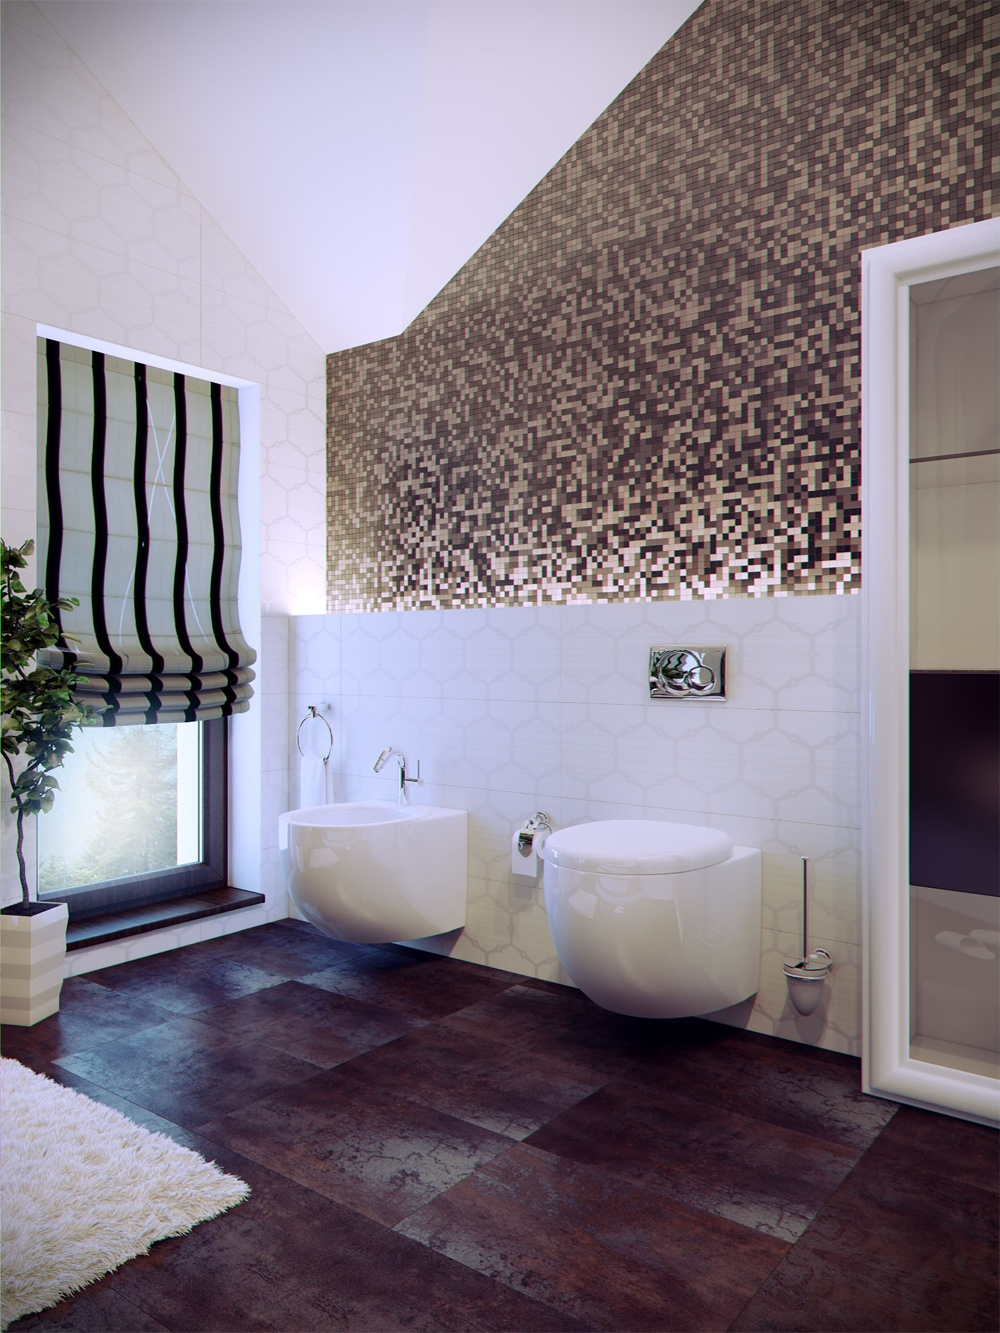 luxury bathroom tiles designs photo - 6